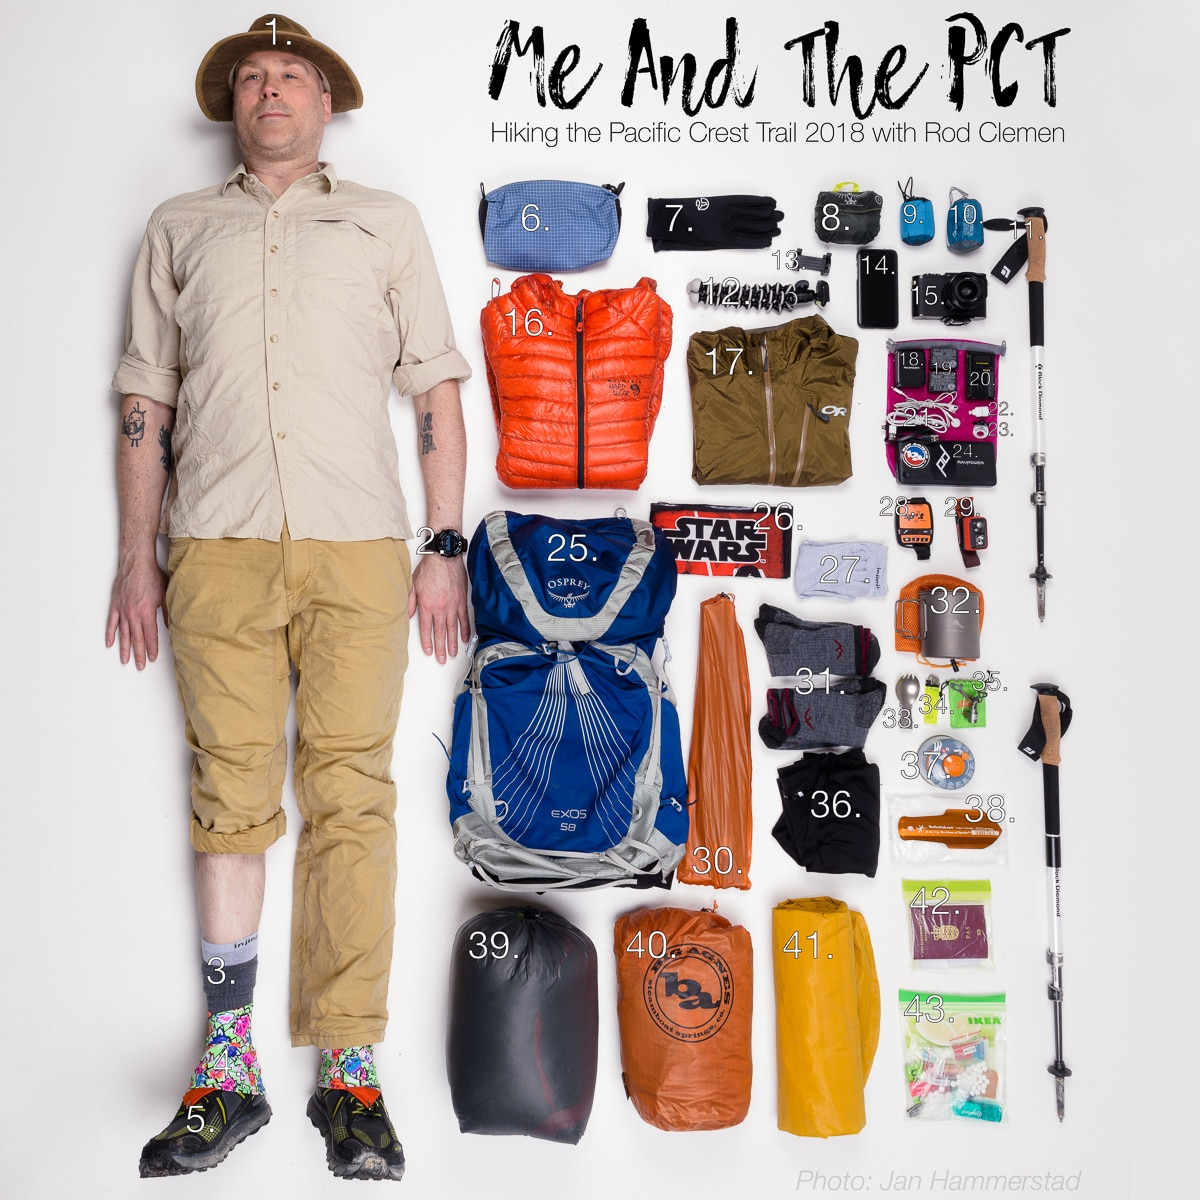 My setup for the PCT – almost